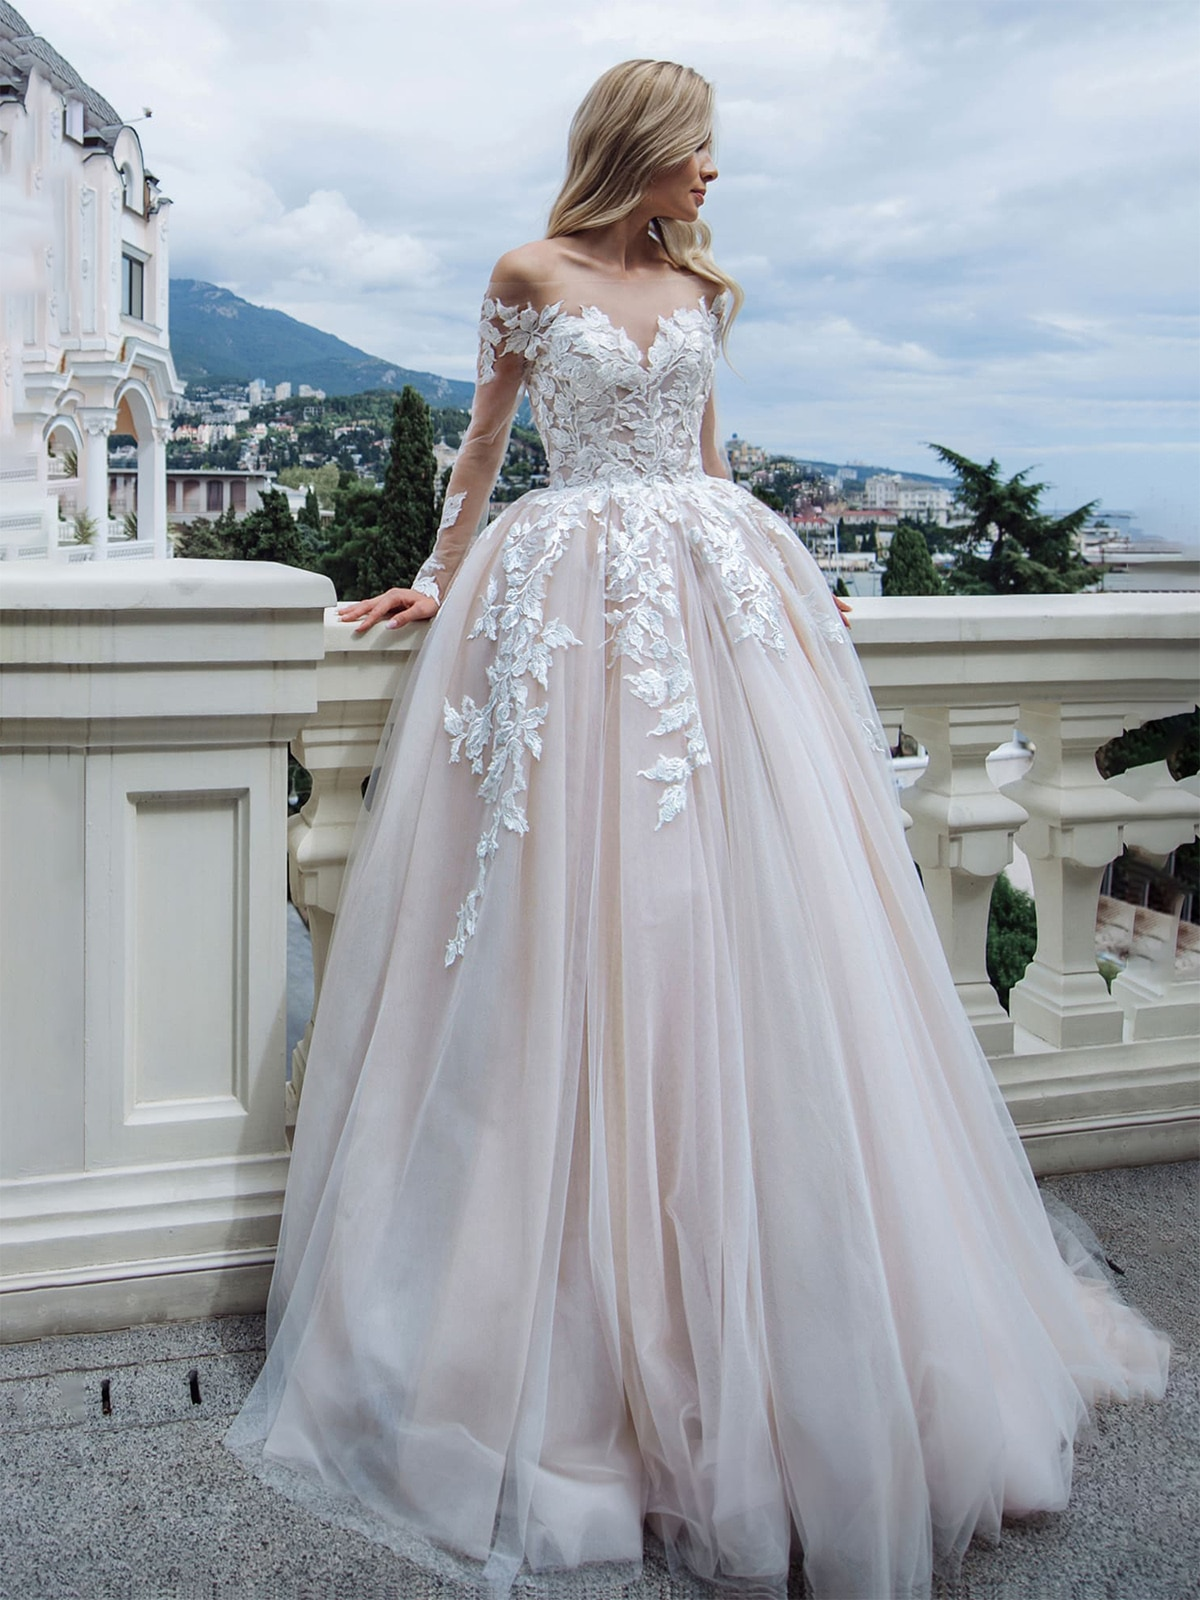 off-the-shoulder-lace-appliqued-bridal-gown-long-sleeves-v-back-photography-2021-custom-made-sheer-tulle-champagne-wedding-dress